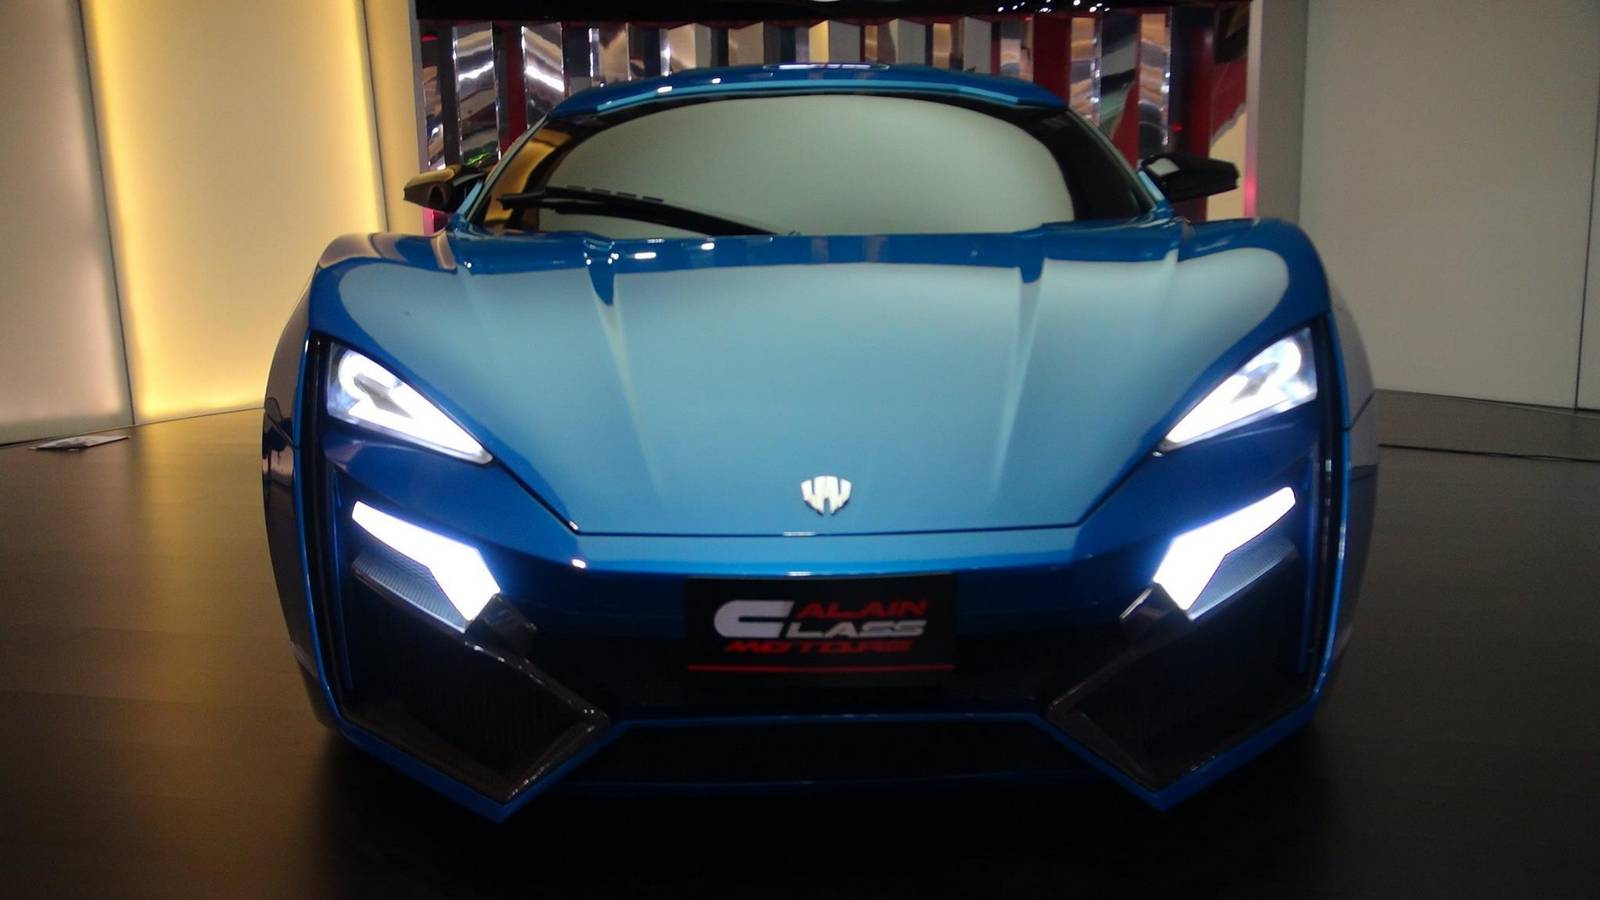 Lykan Hypersport Top View >> Blue Lykan Hypersport at Al Ain Class Motors in Dubai ...